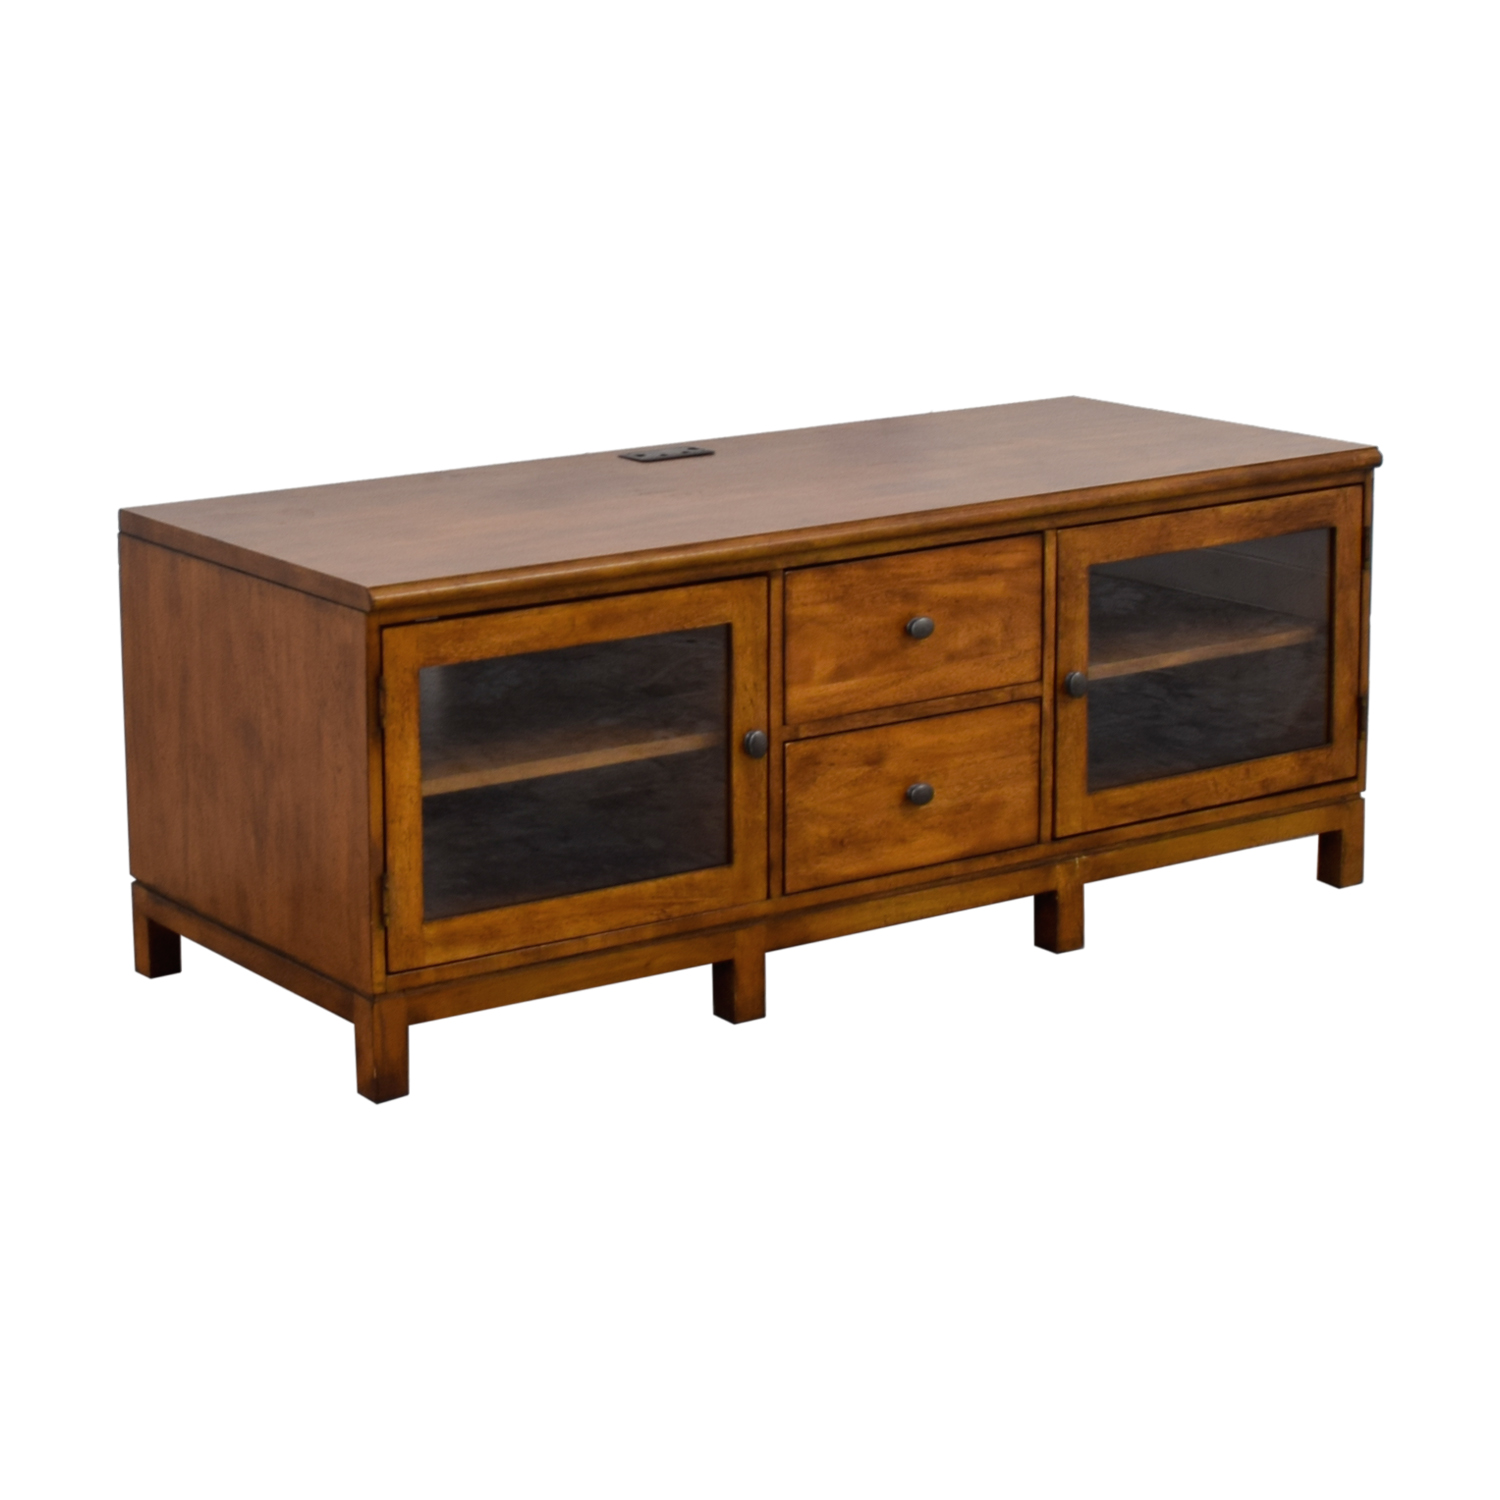 Ethan Allan Ethan Allen Wood Two-Drawer Buffet or Media Center coupon